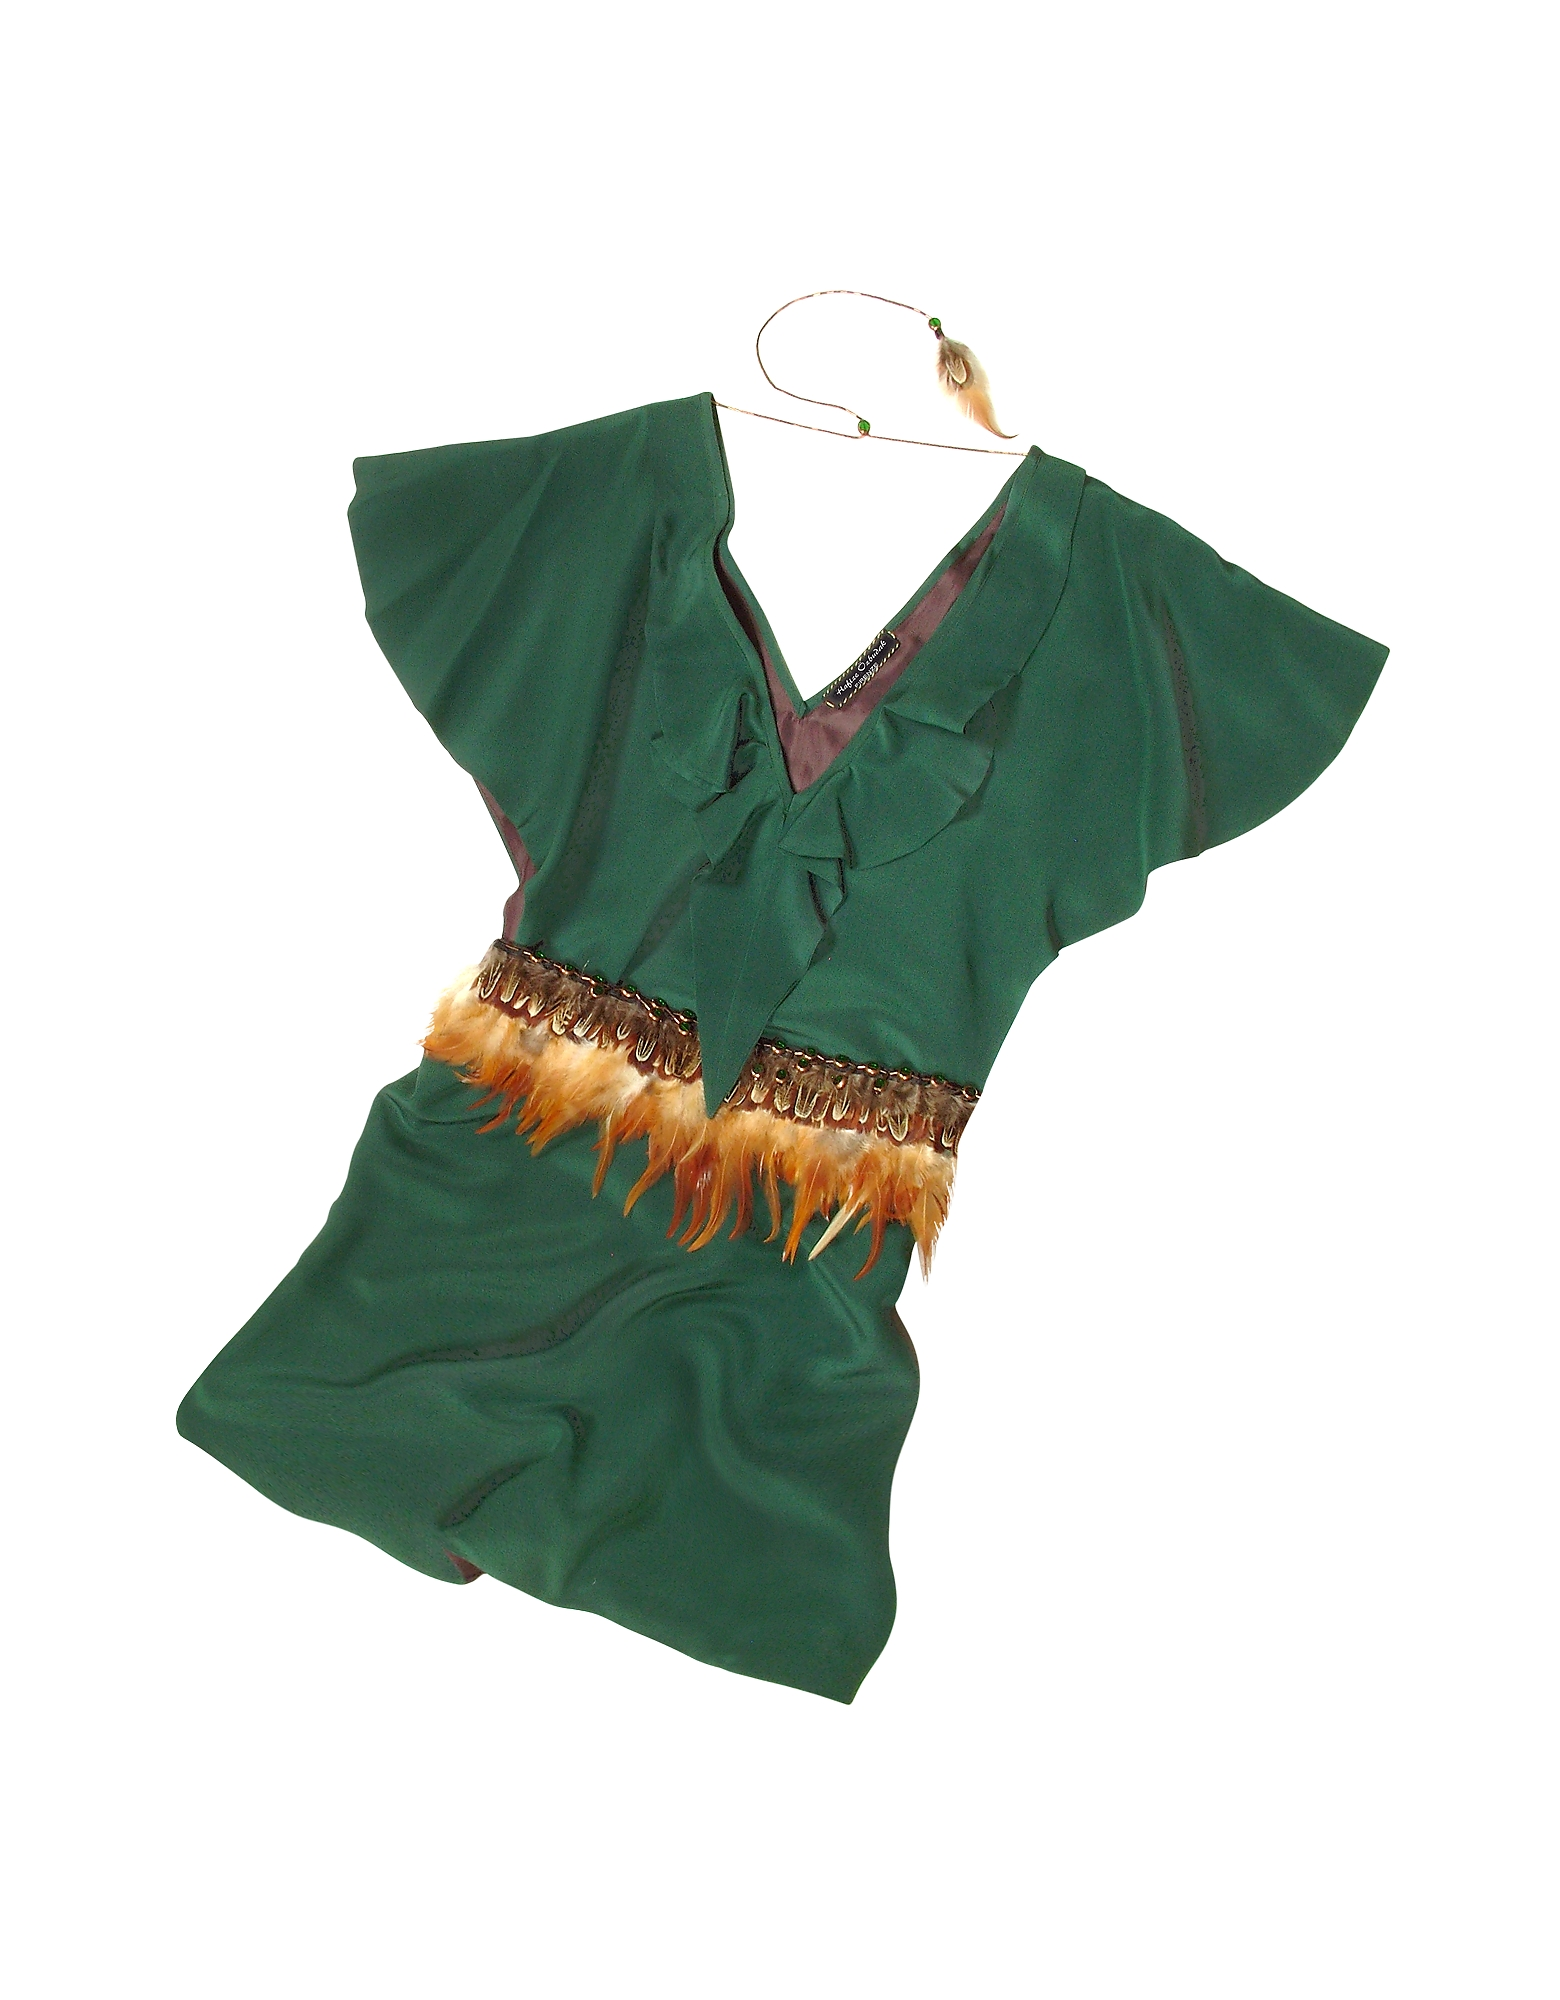 Image of Hafize Ozbudak Designer Tops & Co, Jade Green Silk Tunic with Feather Belt